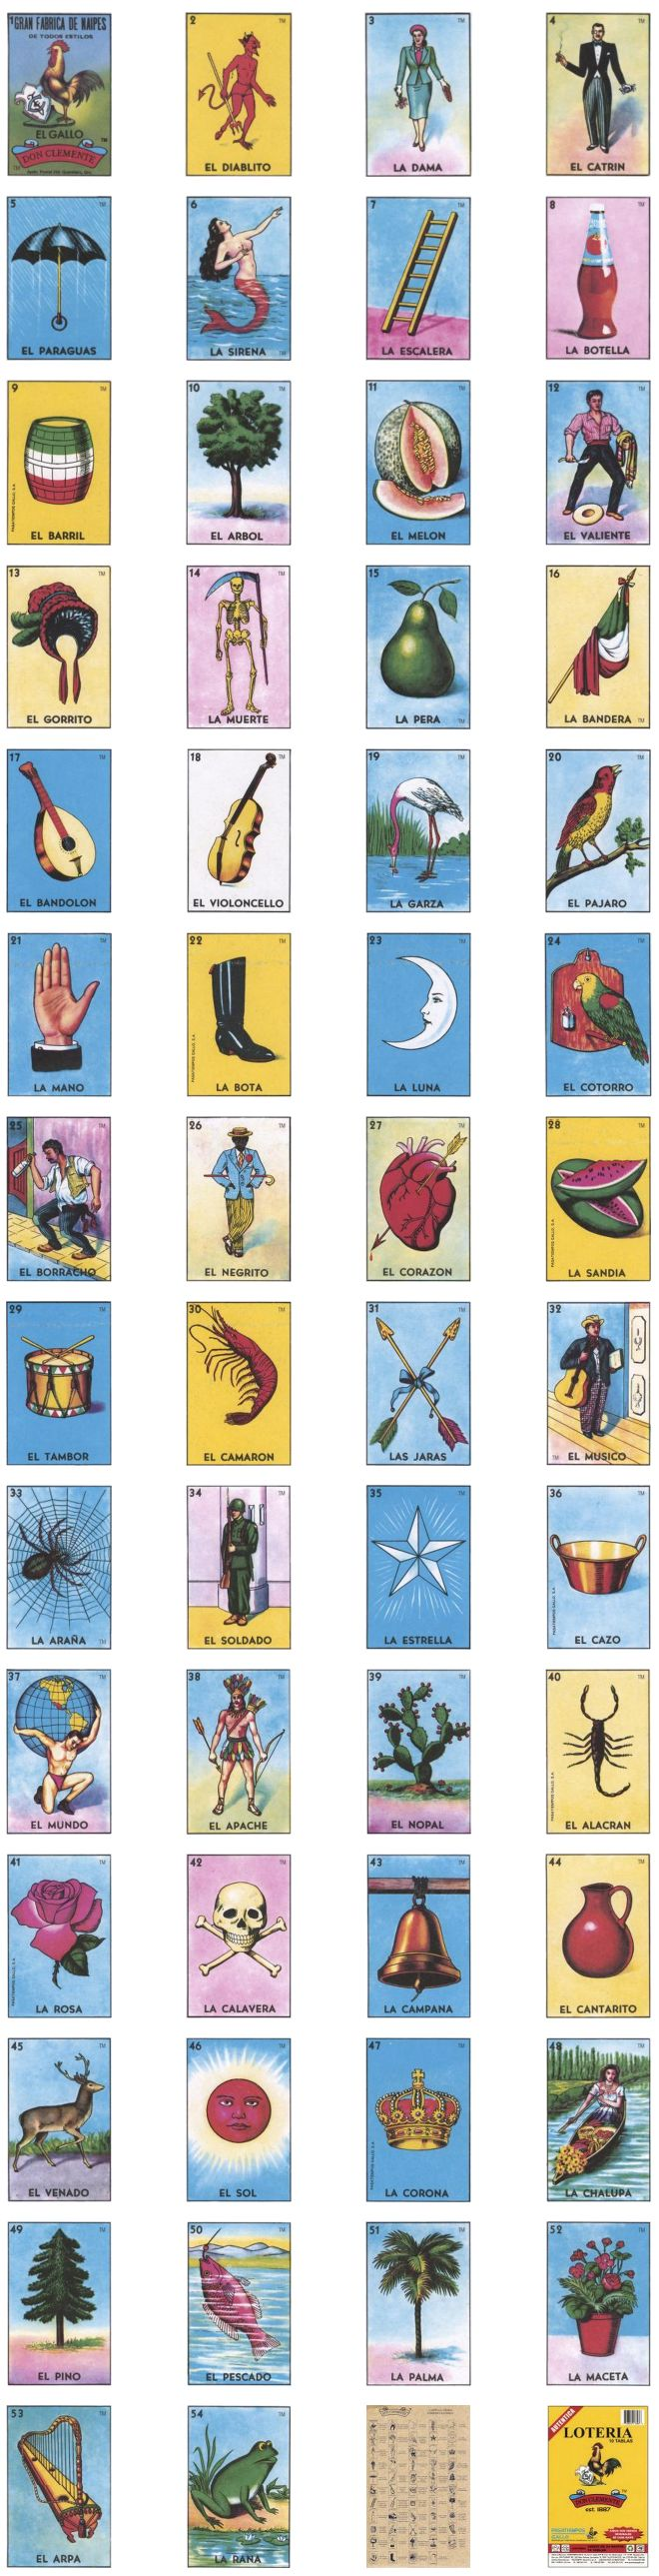 The original Loteria cards, Don Clemente